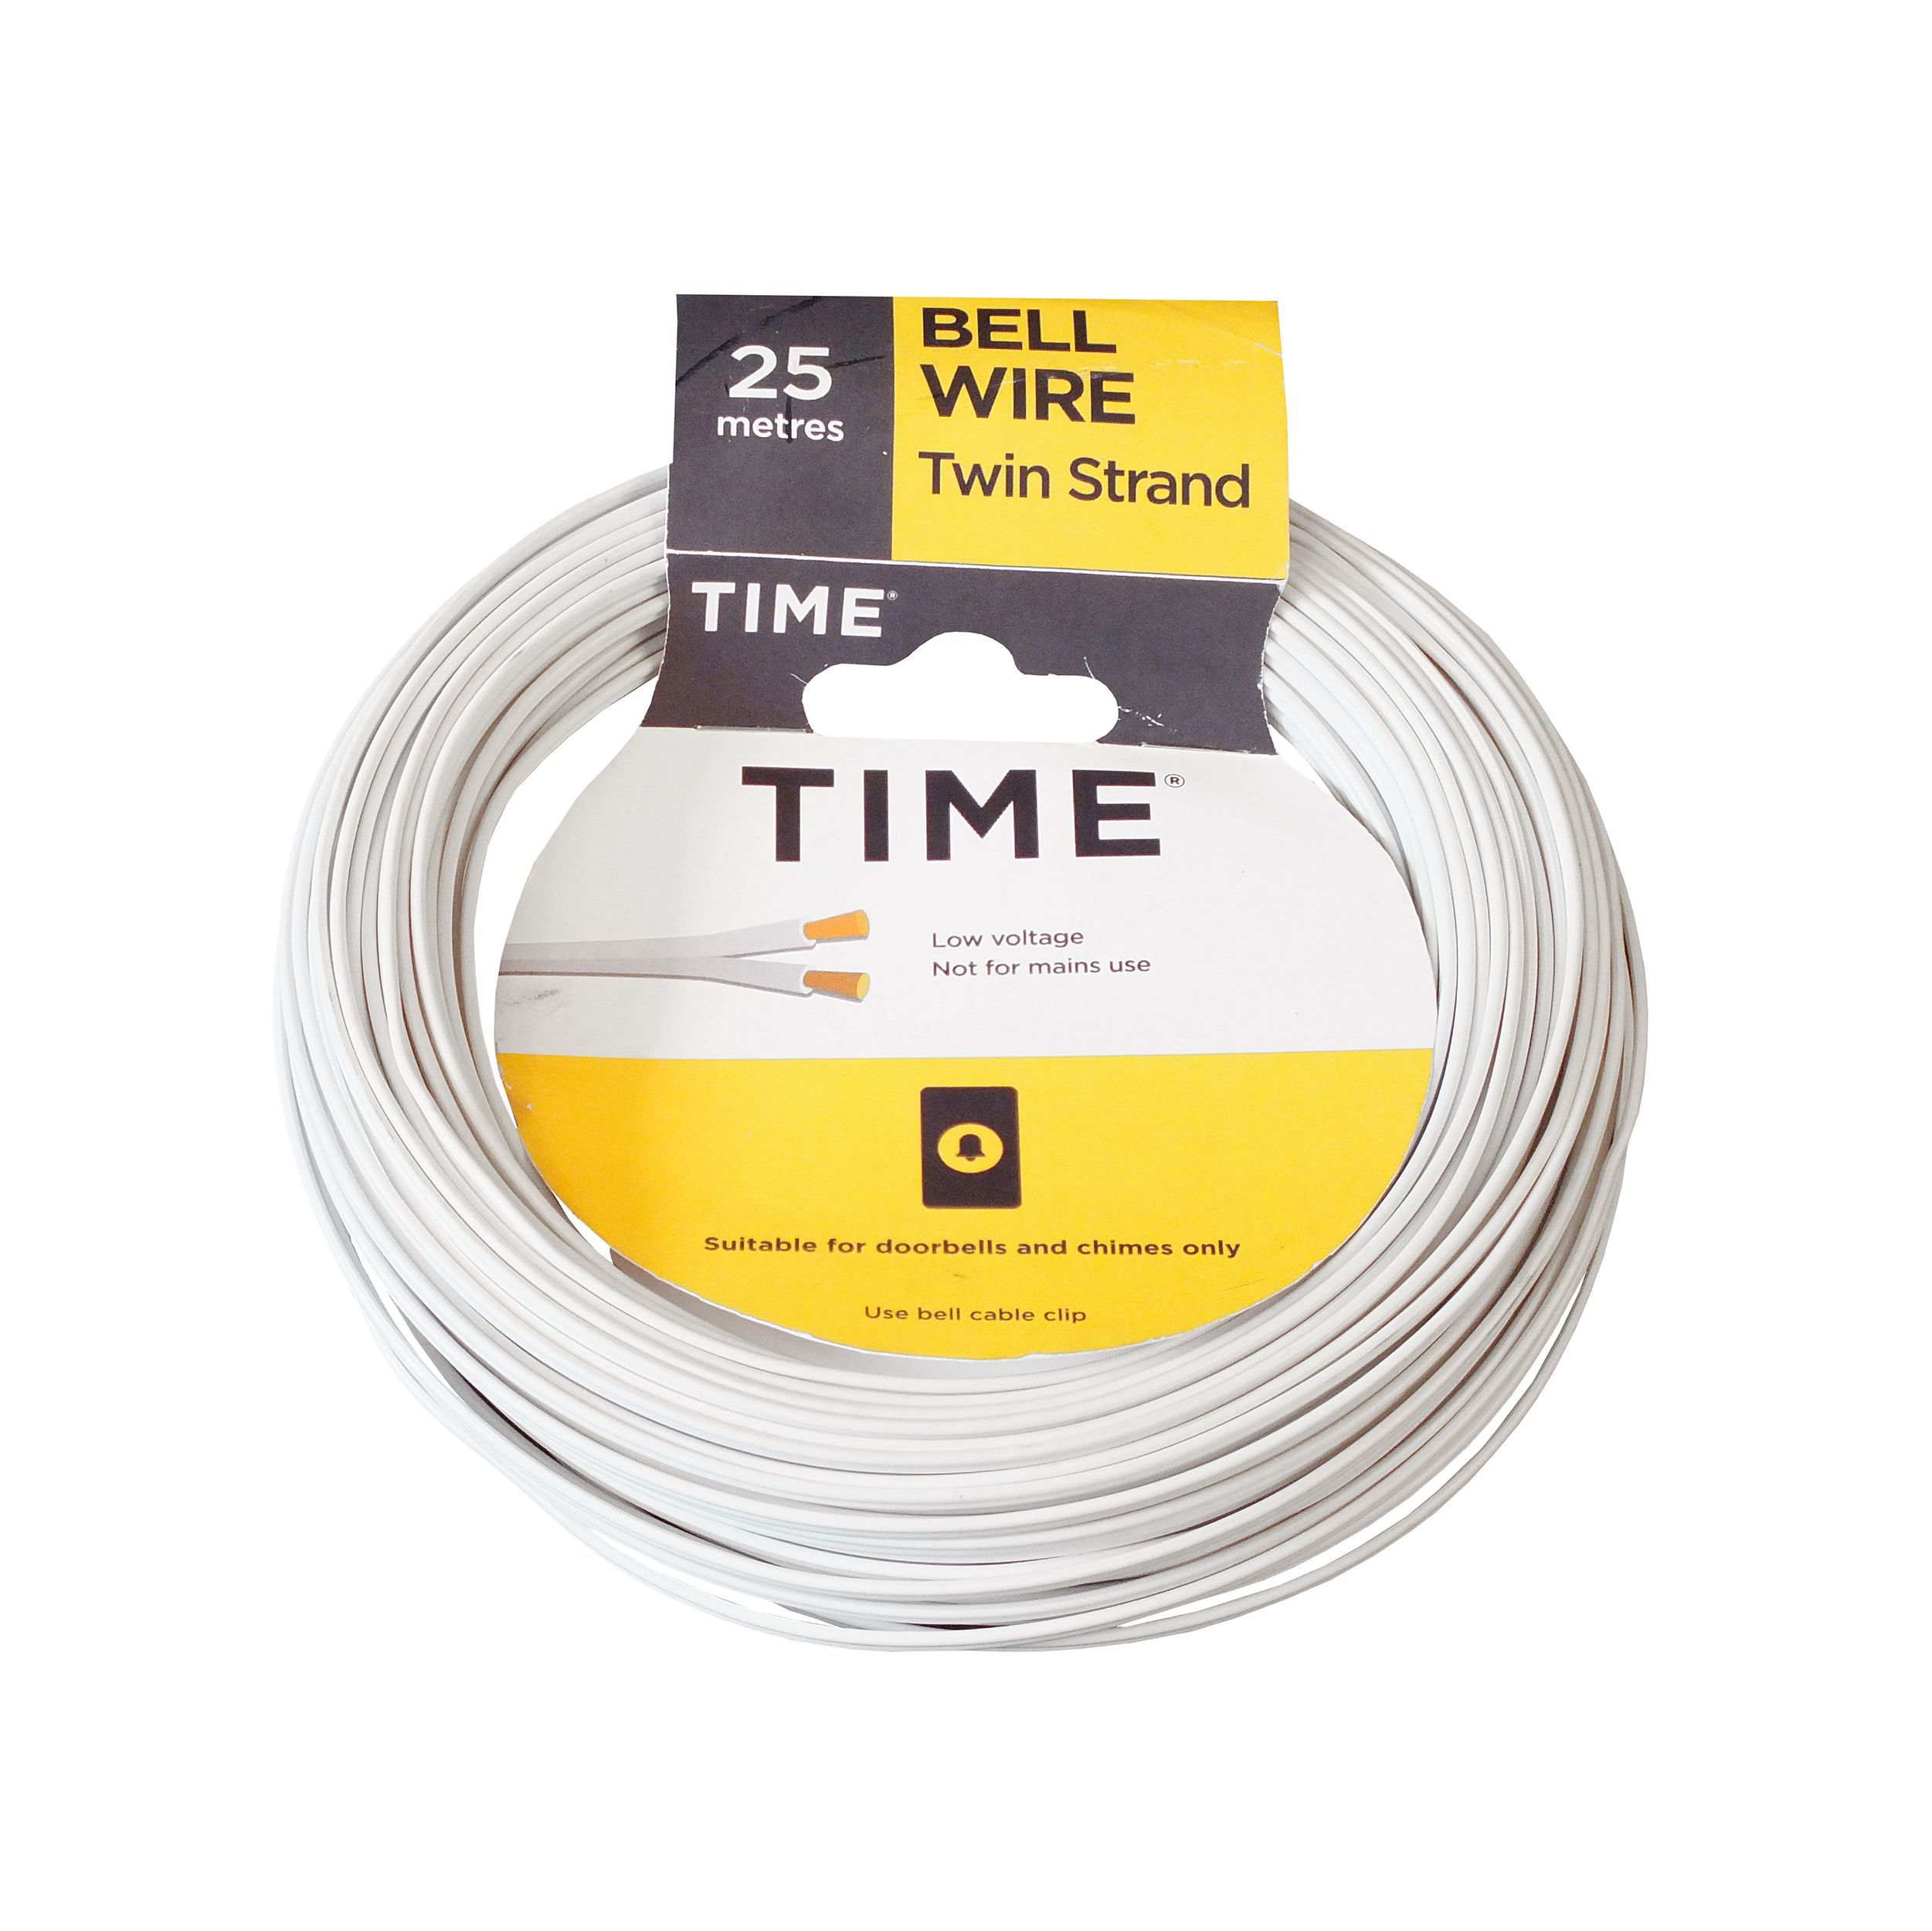 Time Core Bell Wire White 25 M Departments Diy At Bq How To A Shed For Electricity